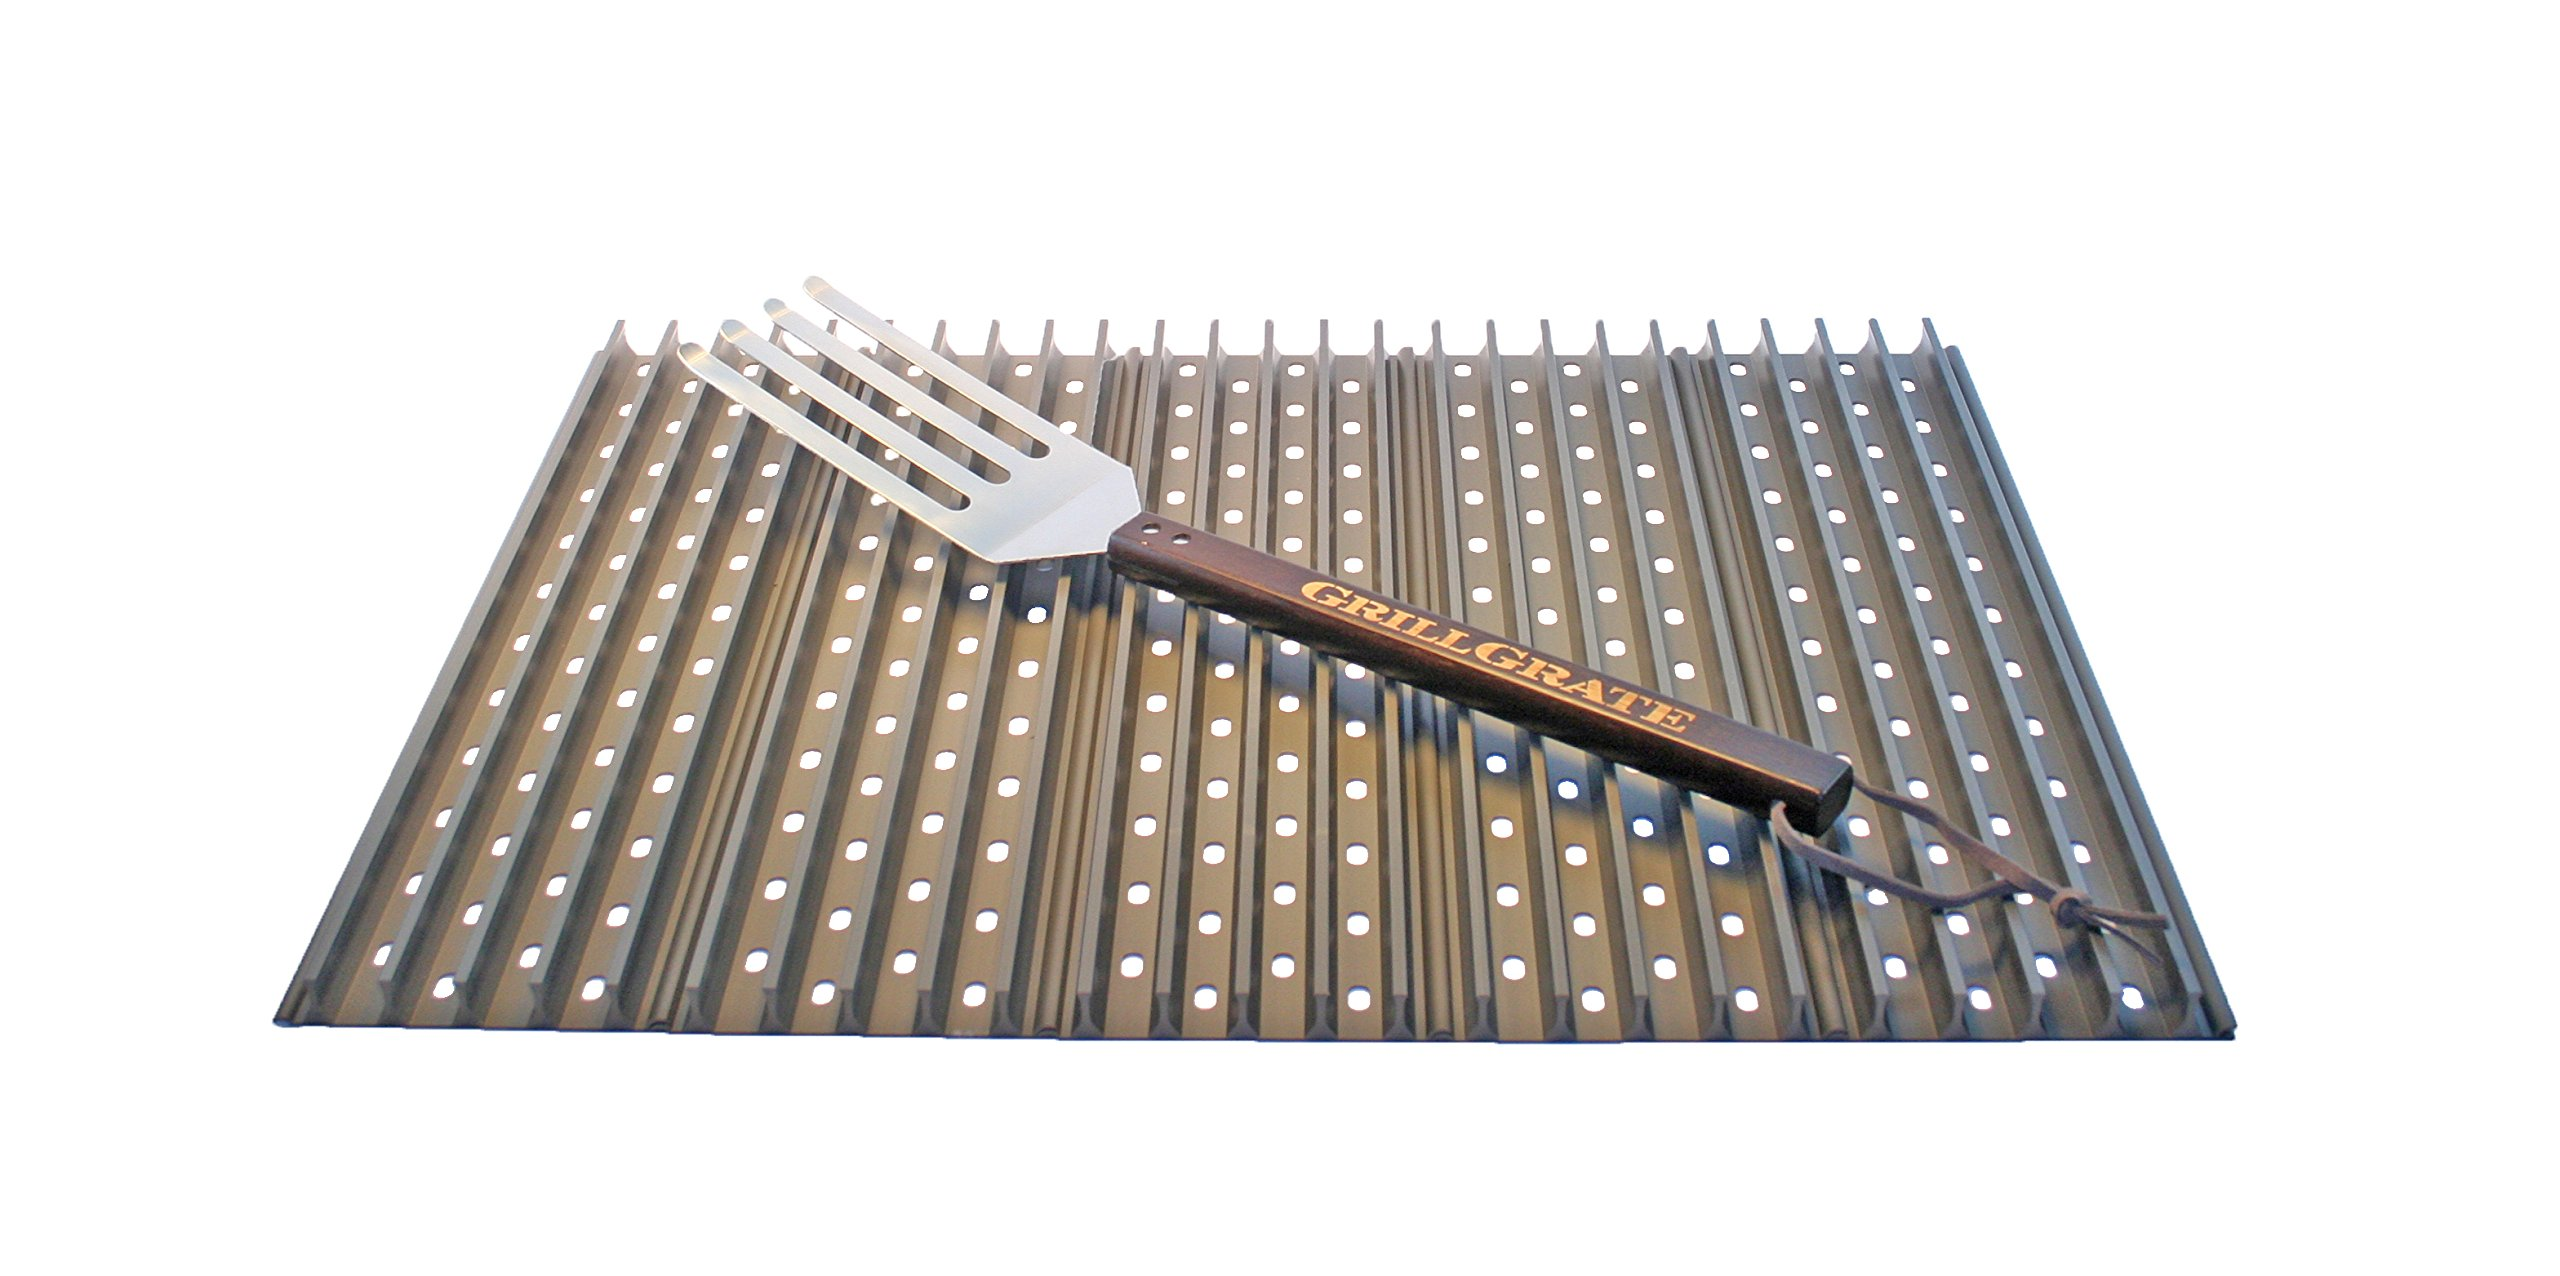 5 Panel GrillGrate Sets of 19.25'' (Interlocking) + GrateTool by GRILL GRATE BRAND THE ORIGINAL RAISED RAIL DESIGN GET FIRED UP · WWW.GRILLGRATE.COM